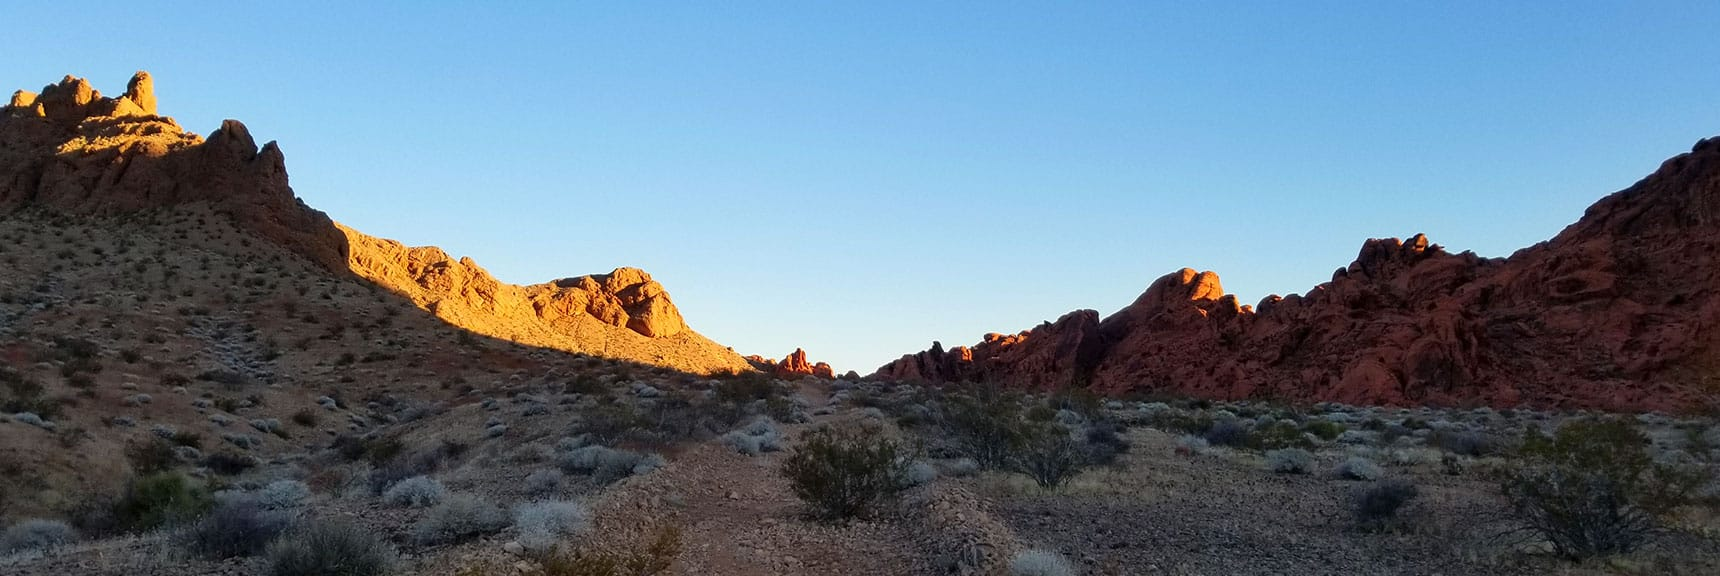 Ascending Toward the Pass for Prospect Trail in Valley of Fire State Park, Nevada